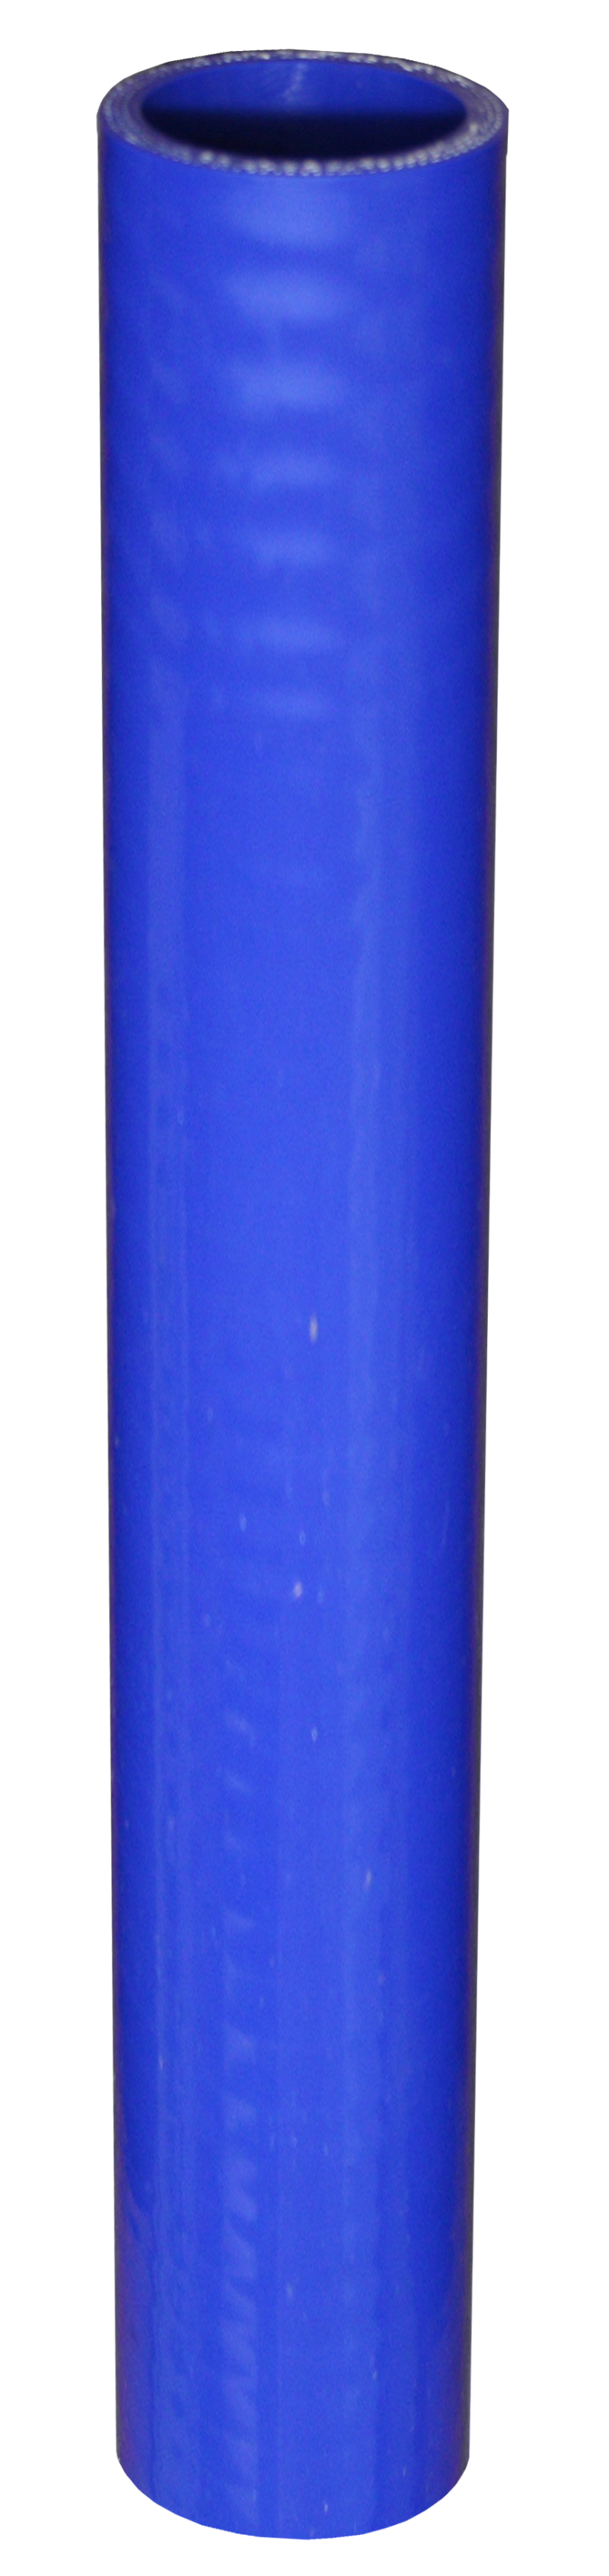 Silicon  Blue  Radiator   Hose  6 Inch Length  1.75 I.D.